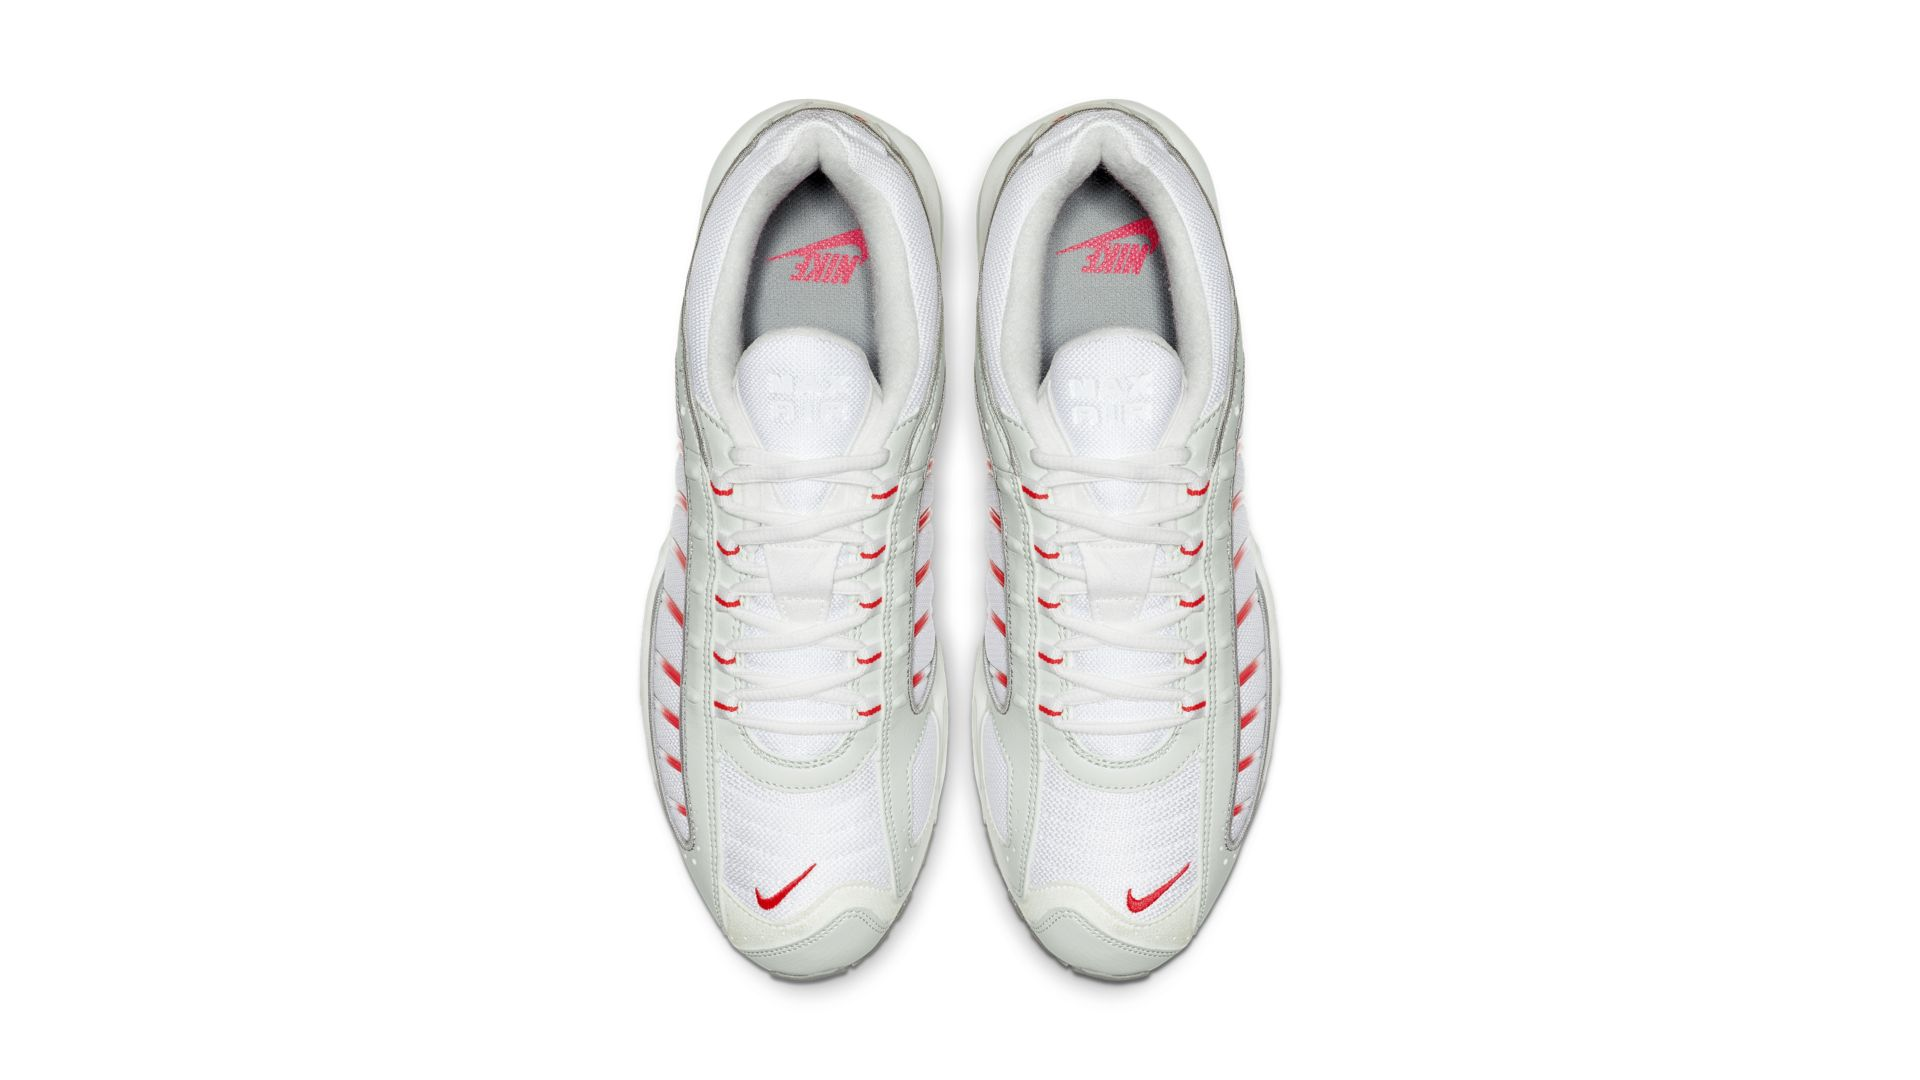 Nike Air Max Tailwind 4 Red Orbit (AQ2567-400)